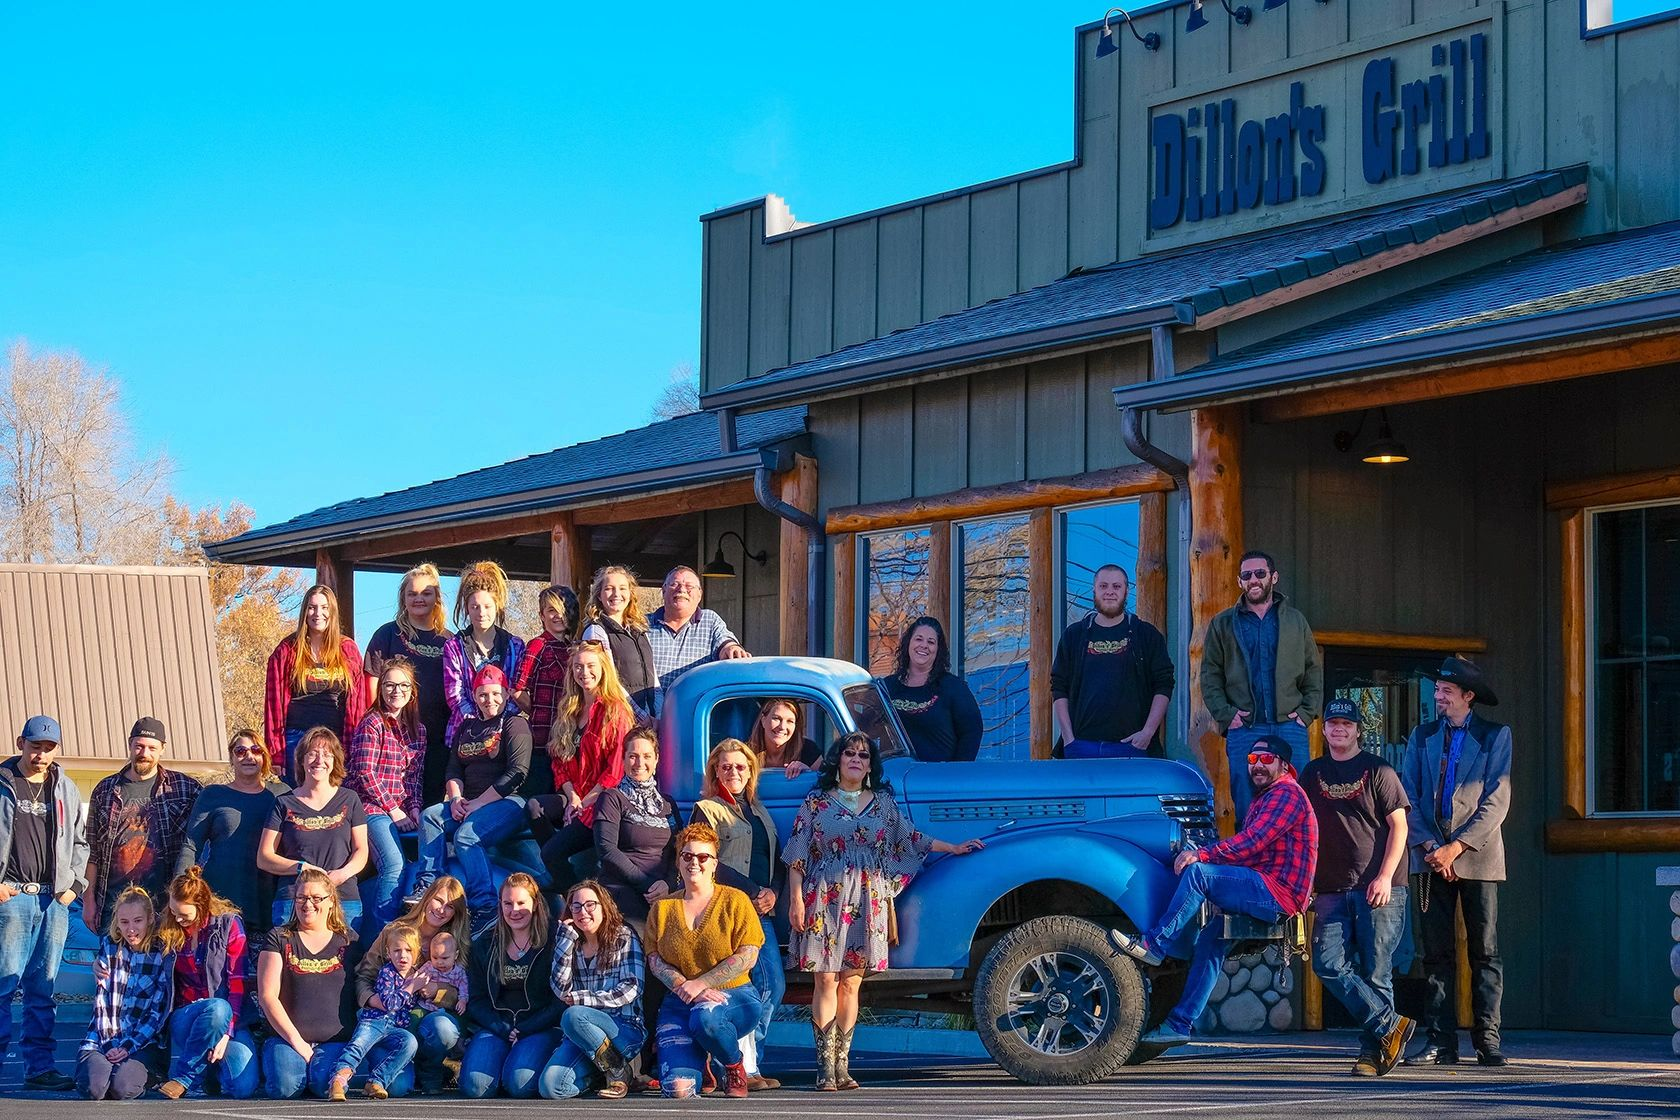 Dillon's Grill in Prineville, Oregon. Join our team of people passionate about serving others.